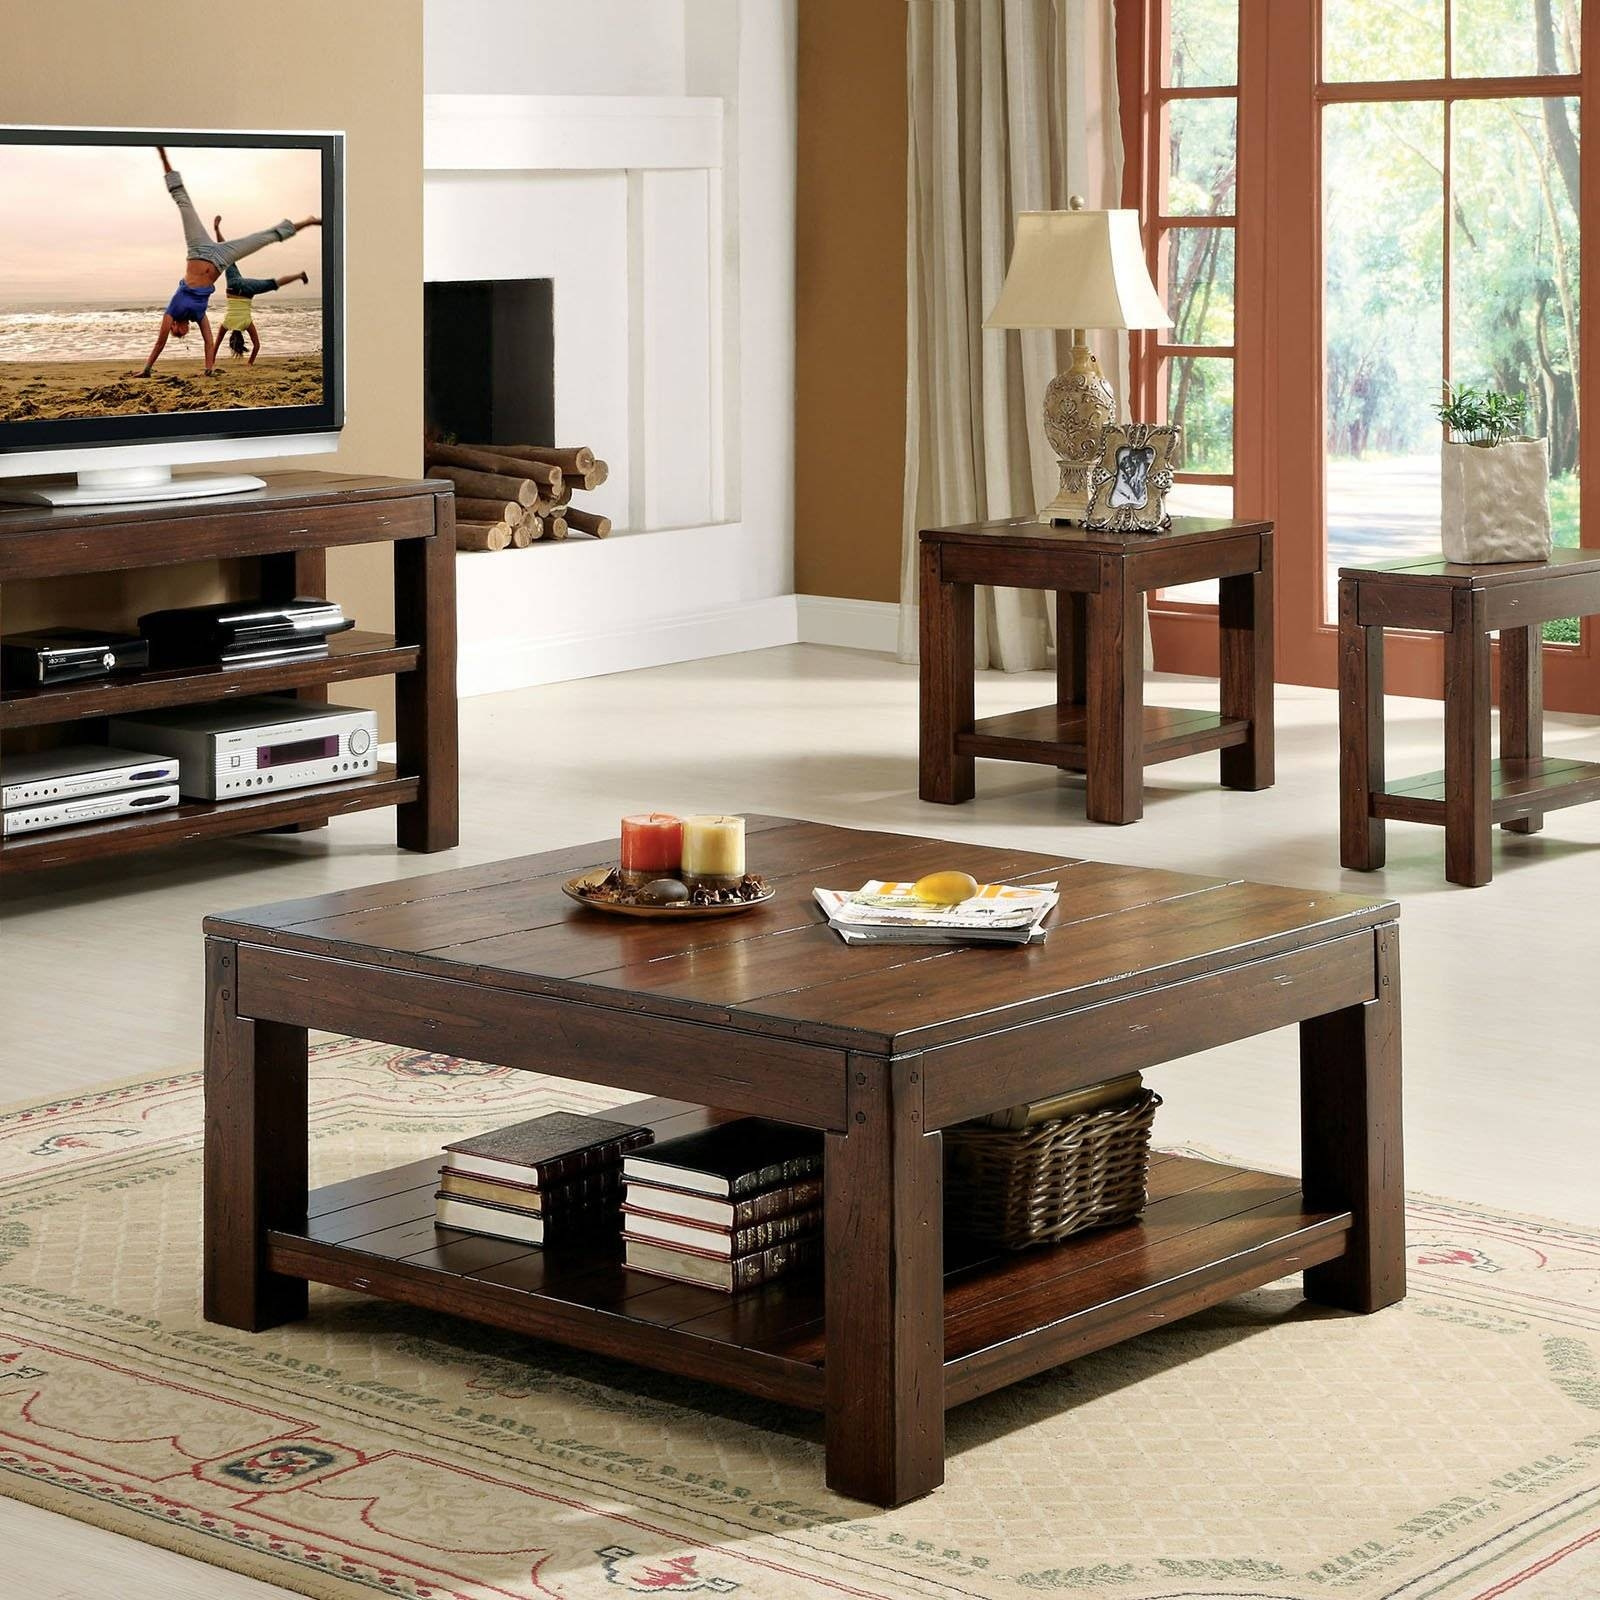 The Best Rustic Coffee Tables and Tv Stands